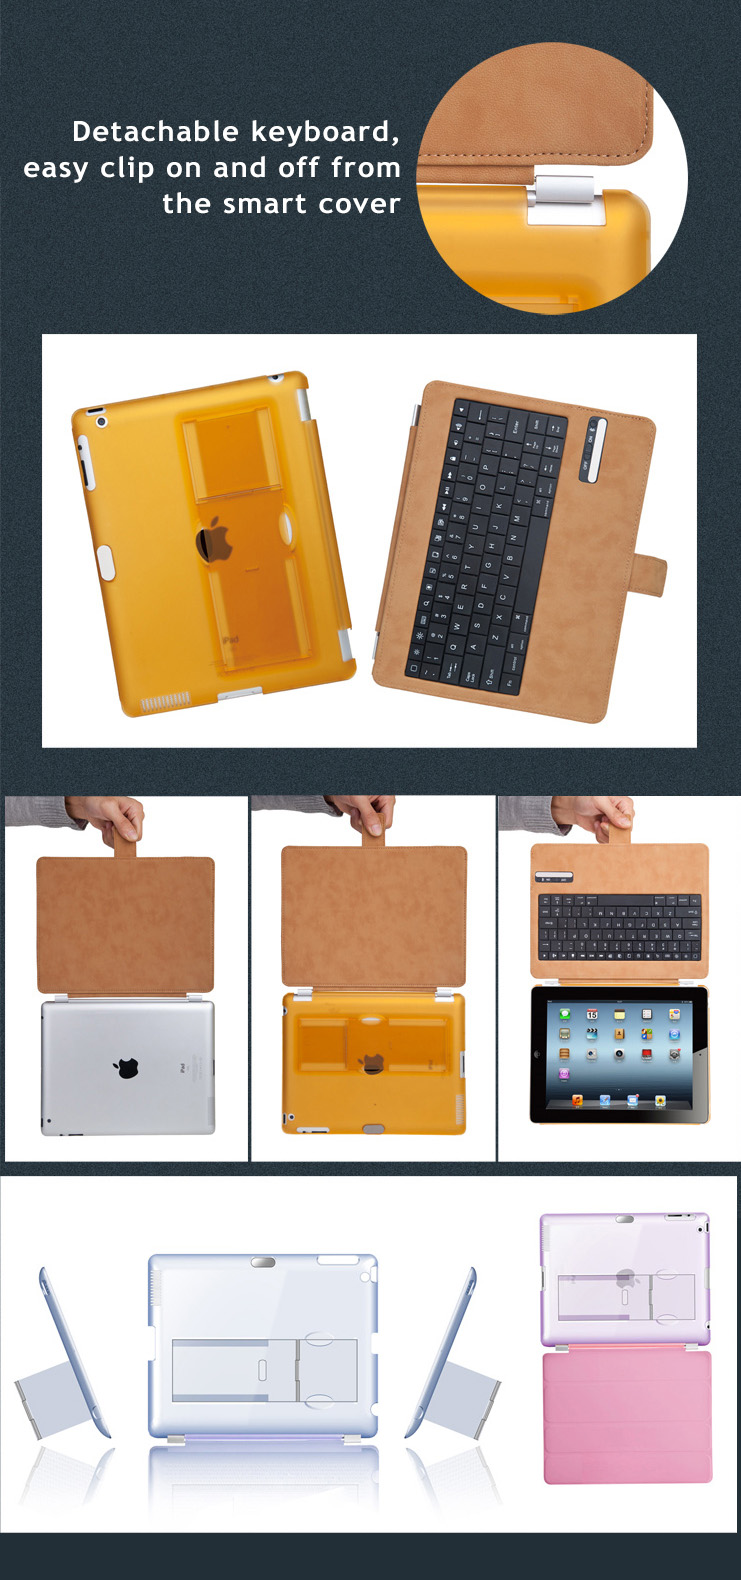 Fine PU Leather + PC Cover Case + Bluetooth Wireless Detachable Keyboard for iPad 2,  iPad 3,  iPad 4, -  with Stand on back cover